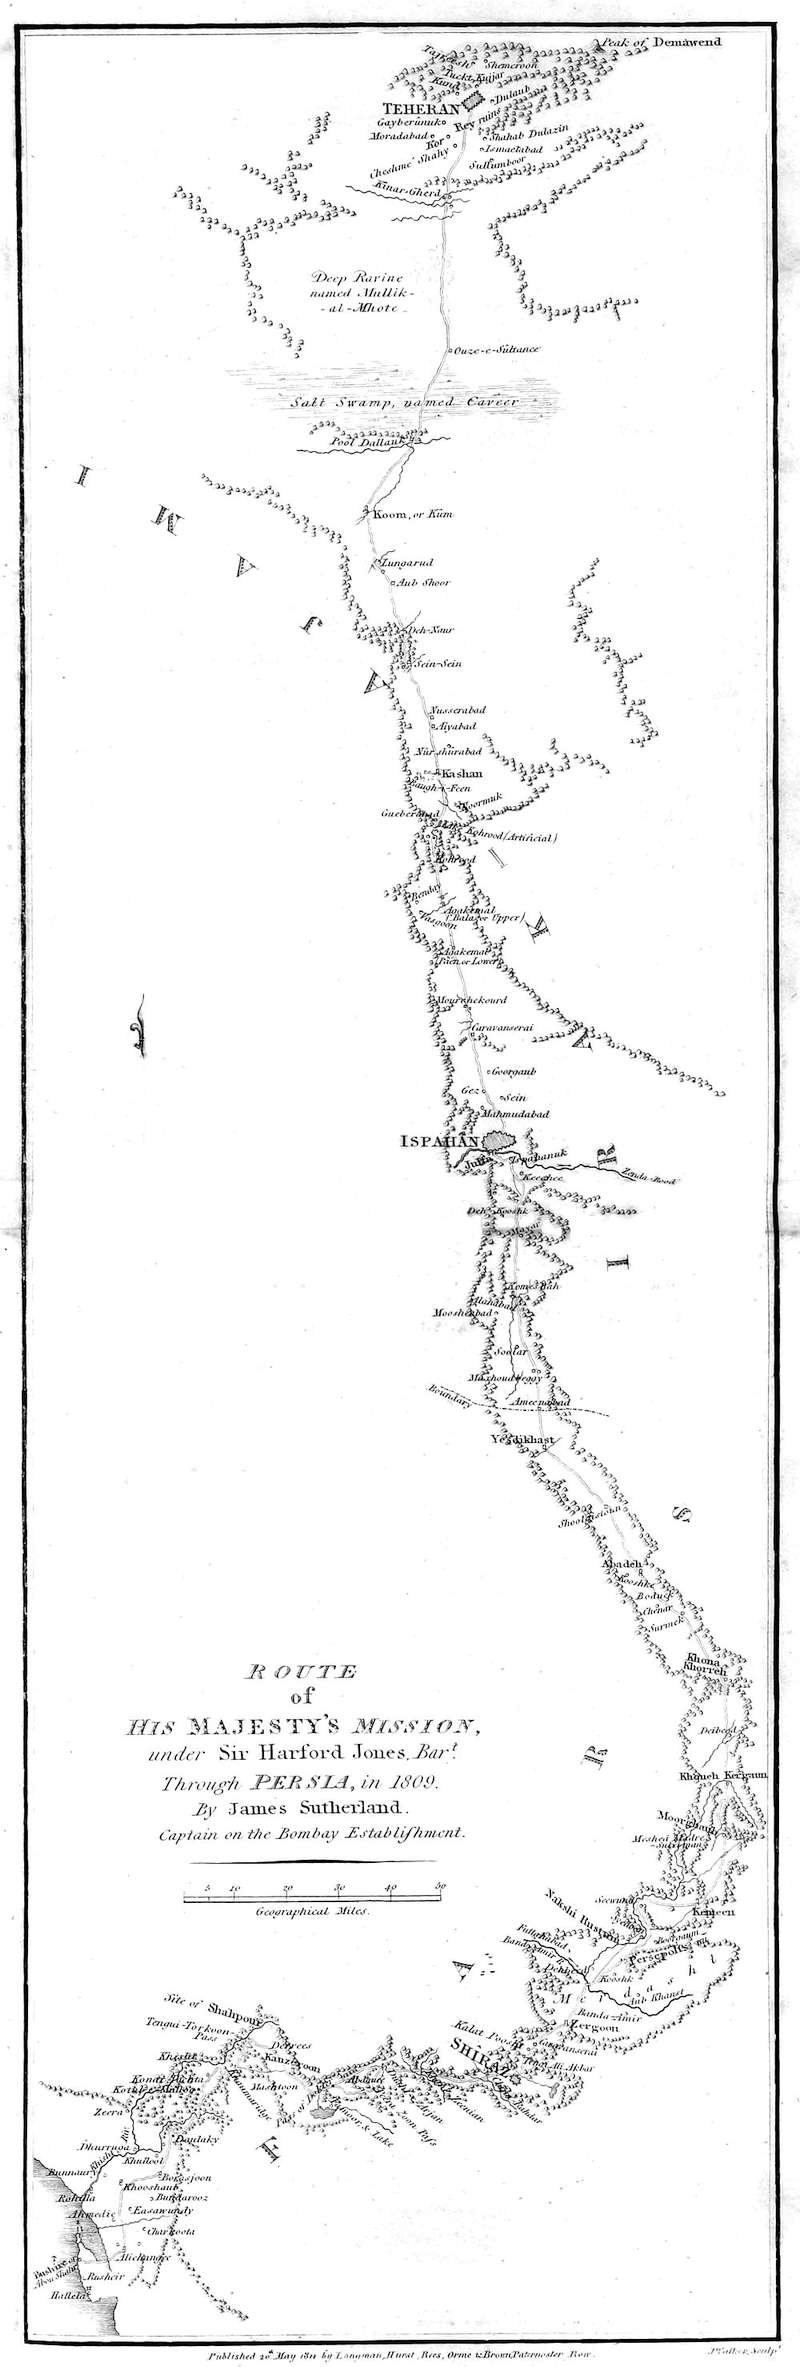 Elephant En Inde Signification the project gutenberg ebook of a journey through persia